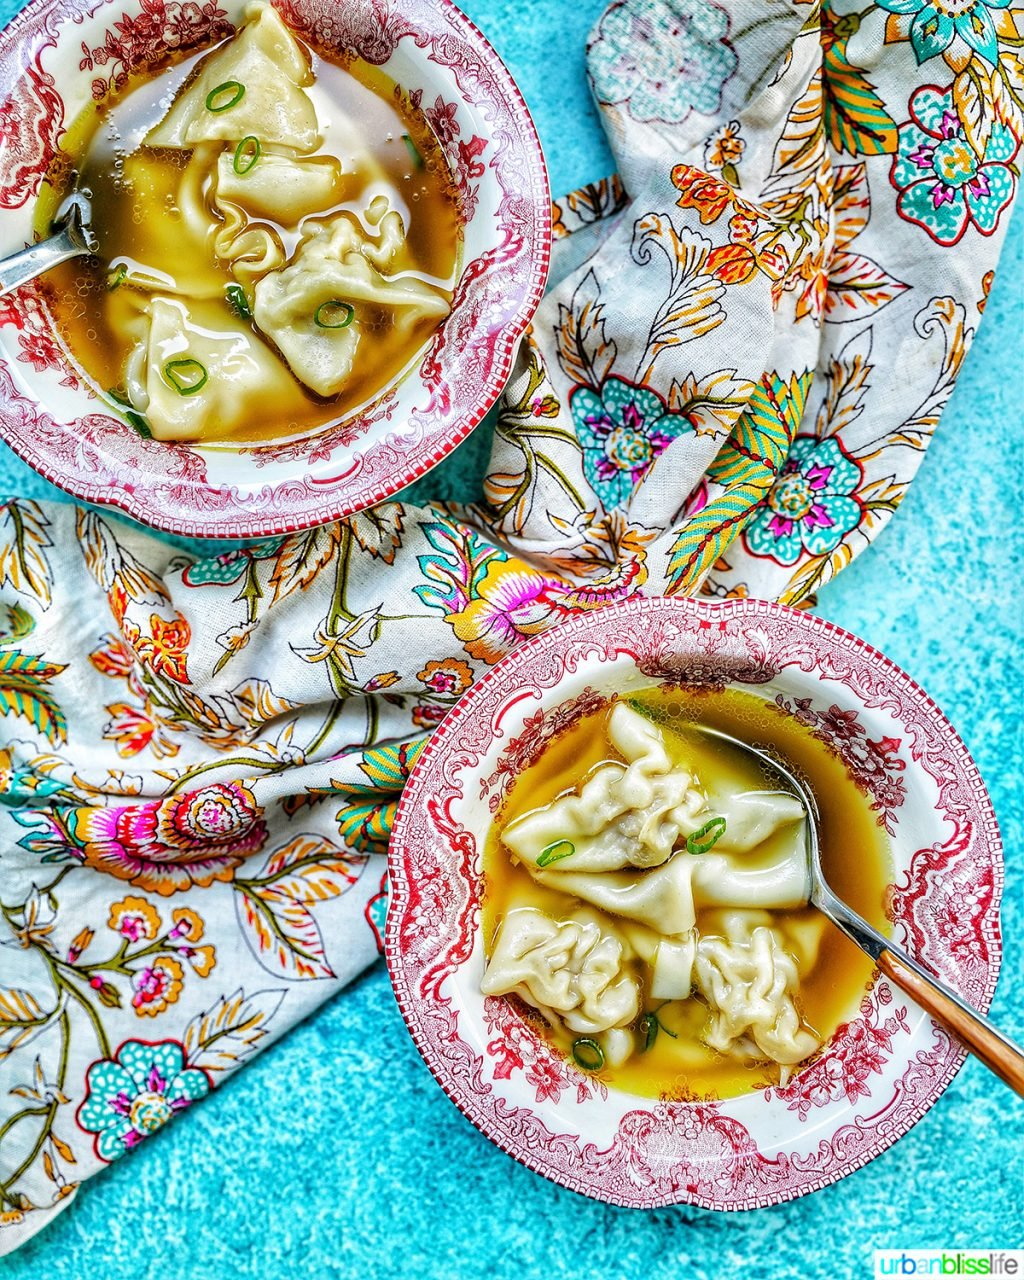 two bowls of wonton noodle soup with spoon, colorful napkin, and blue background